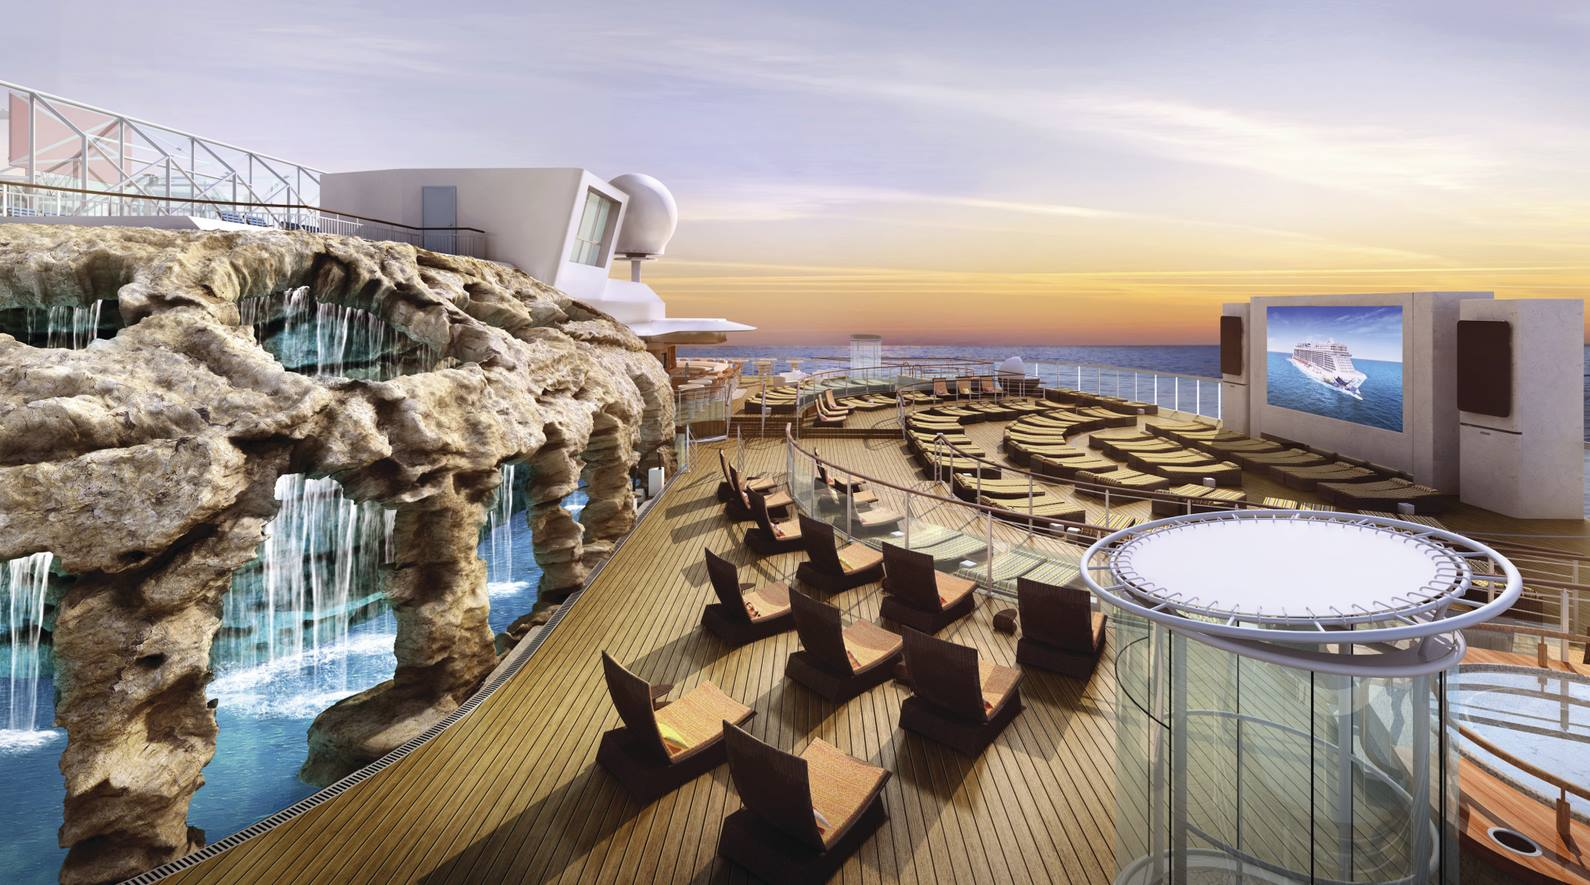 Norwegian Escape To Feature Snow Room And Largest Thermal